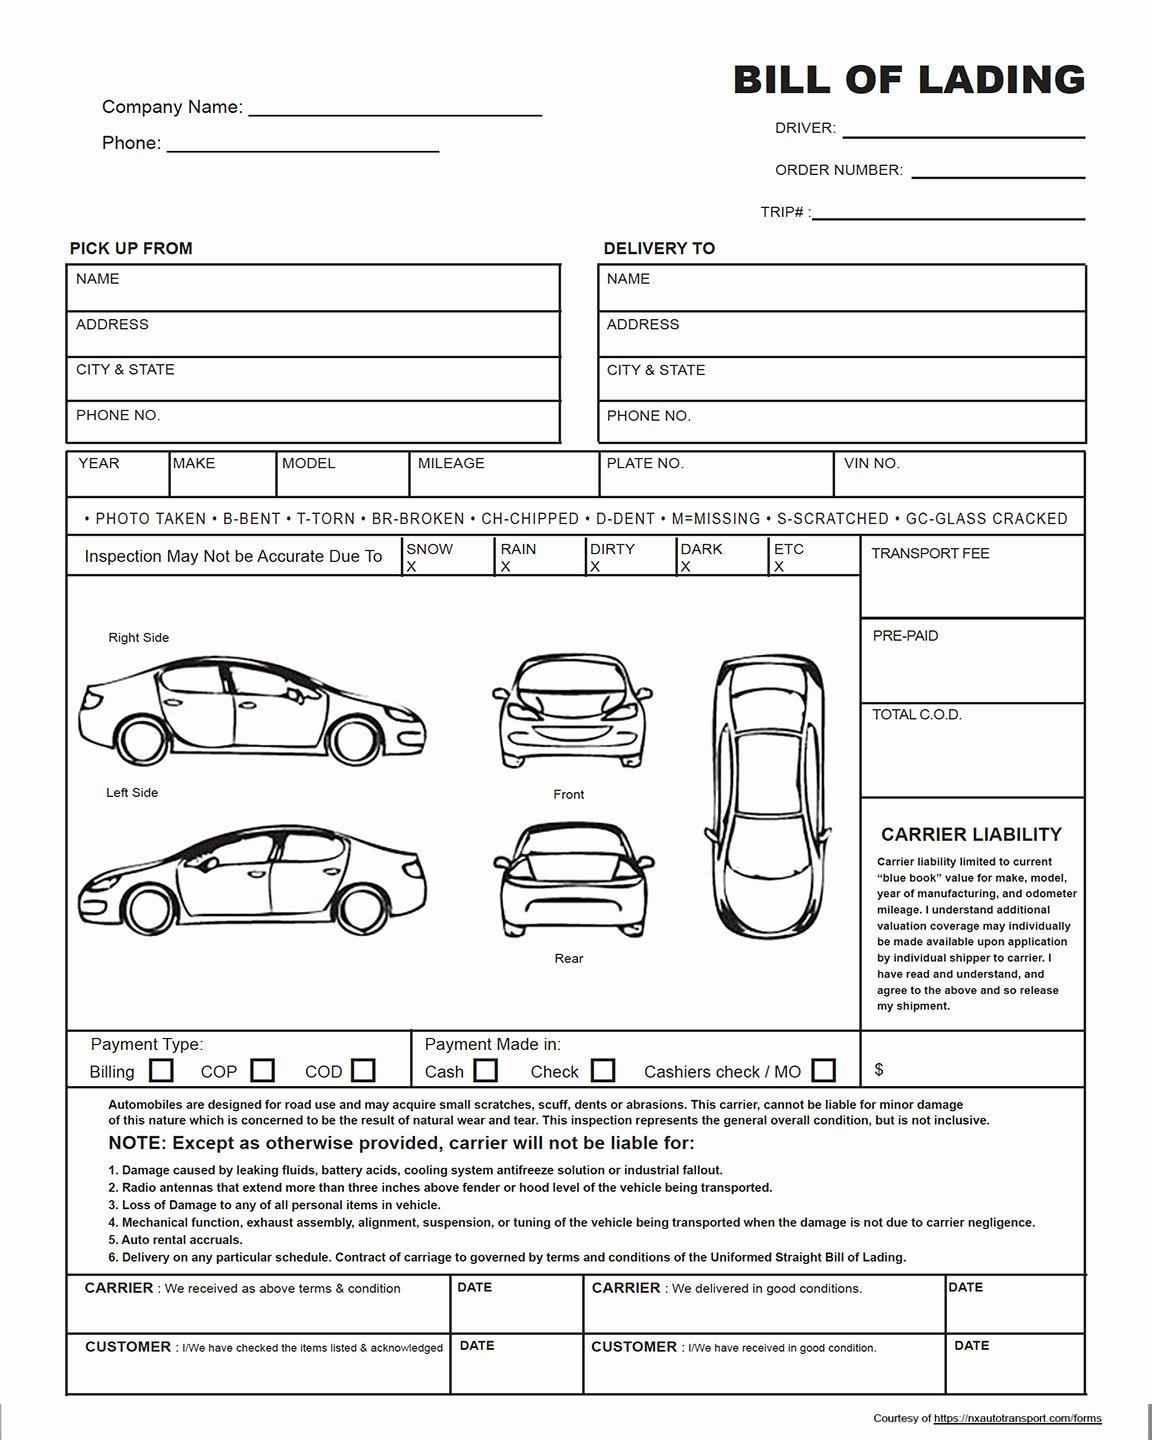 Car Inspection Checklist Template Beautiful the Auto Transport Bill Of Lading